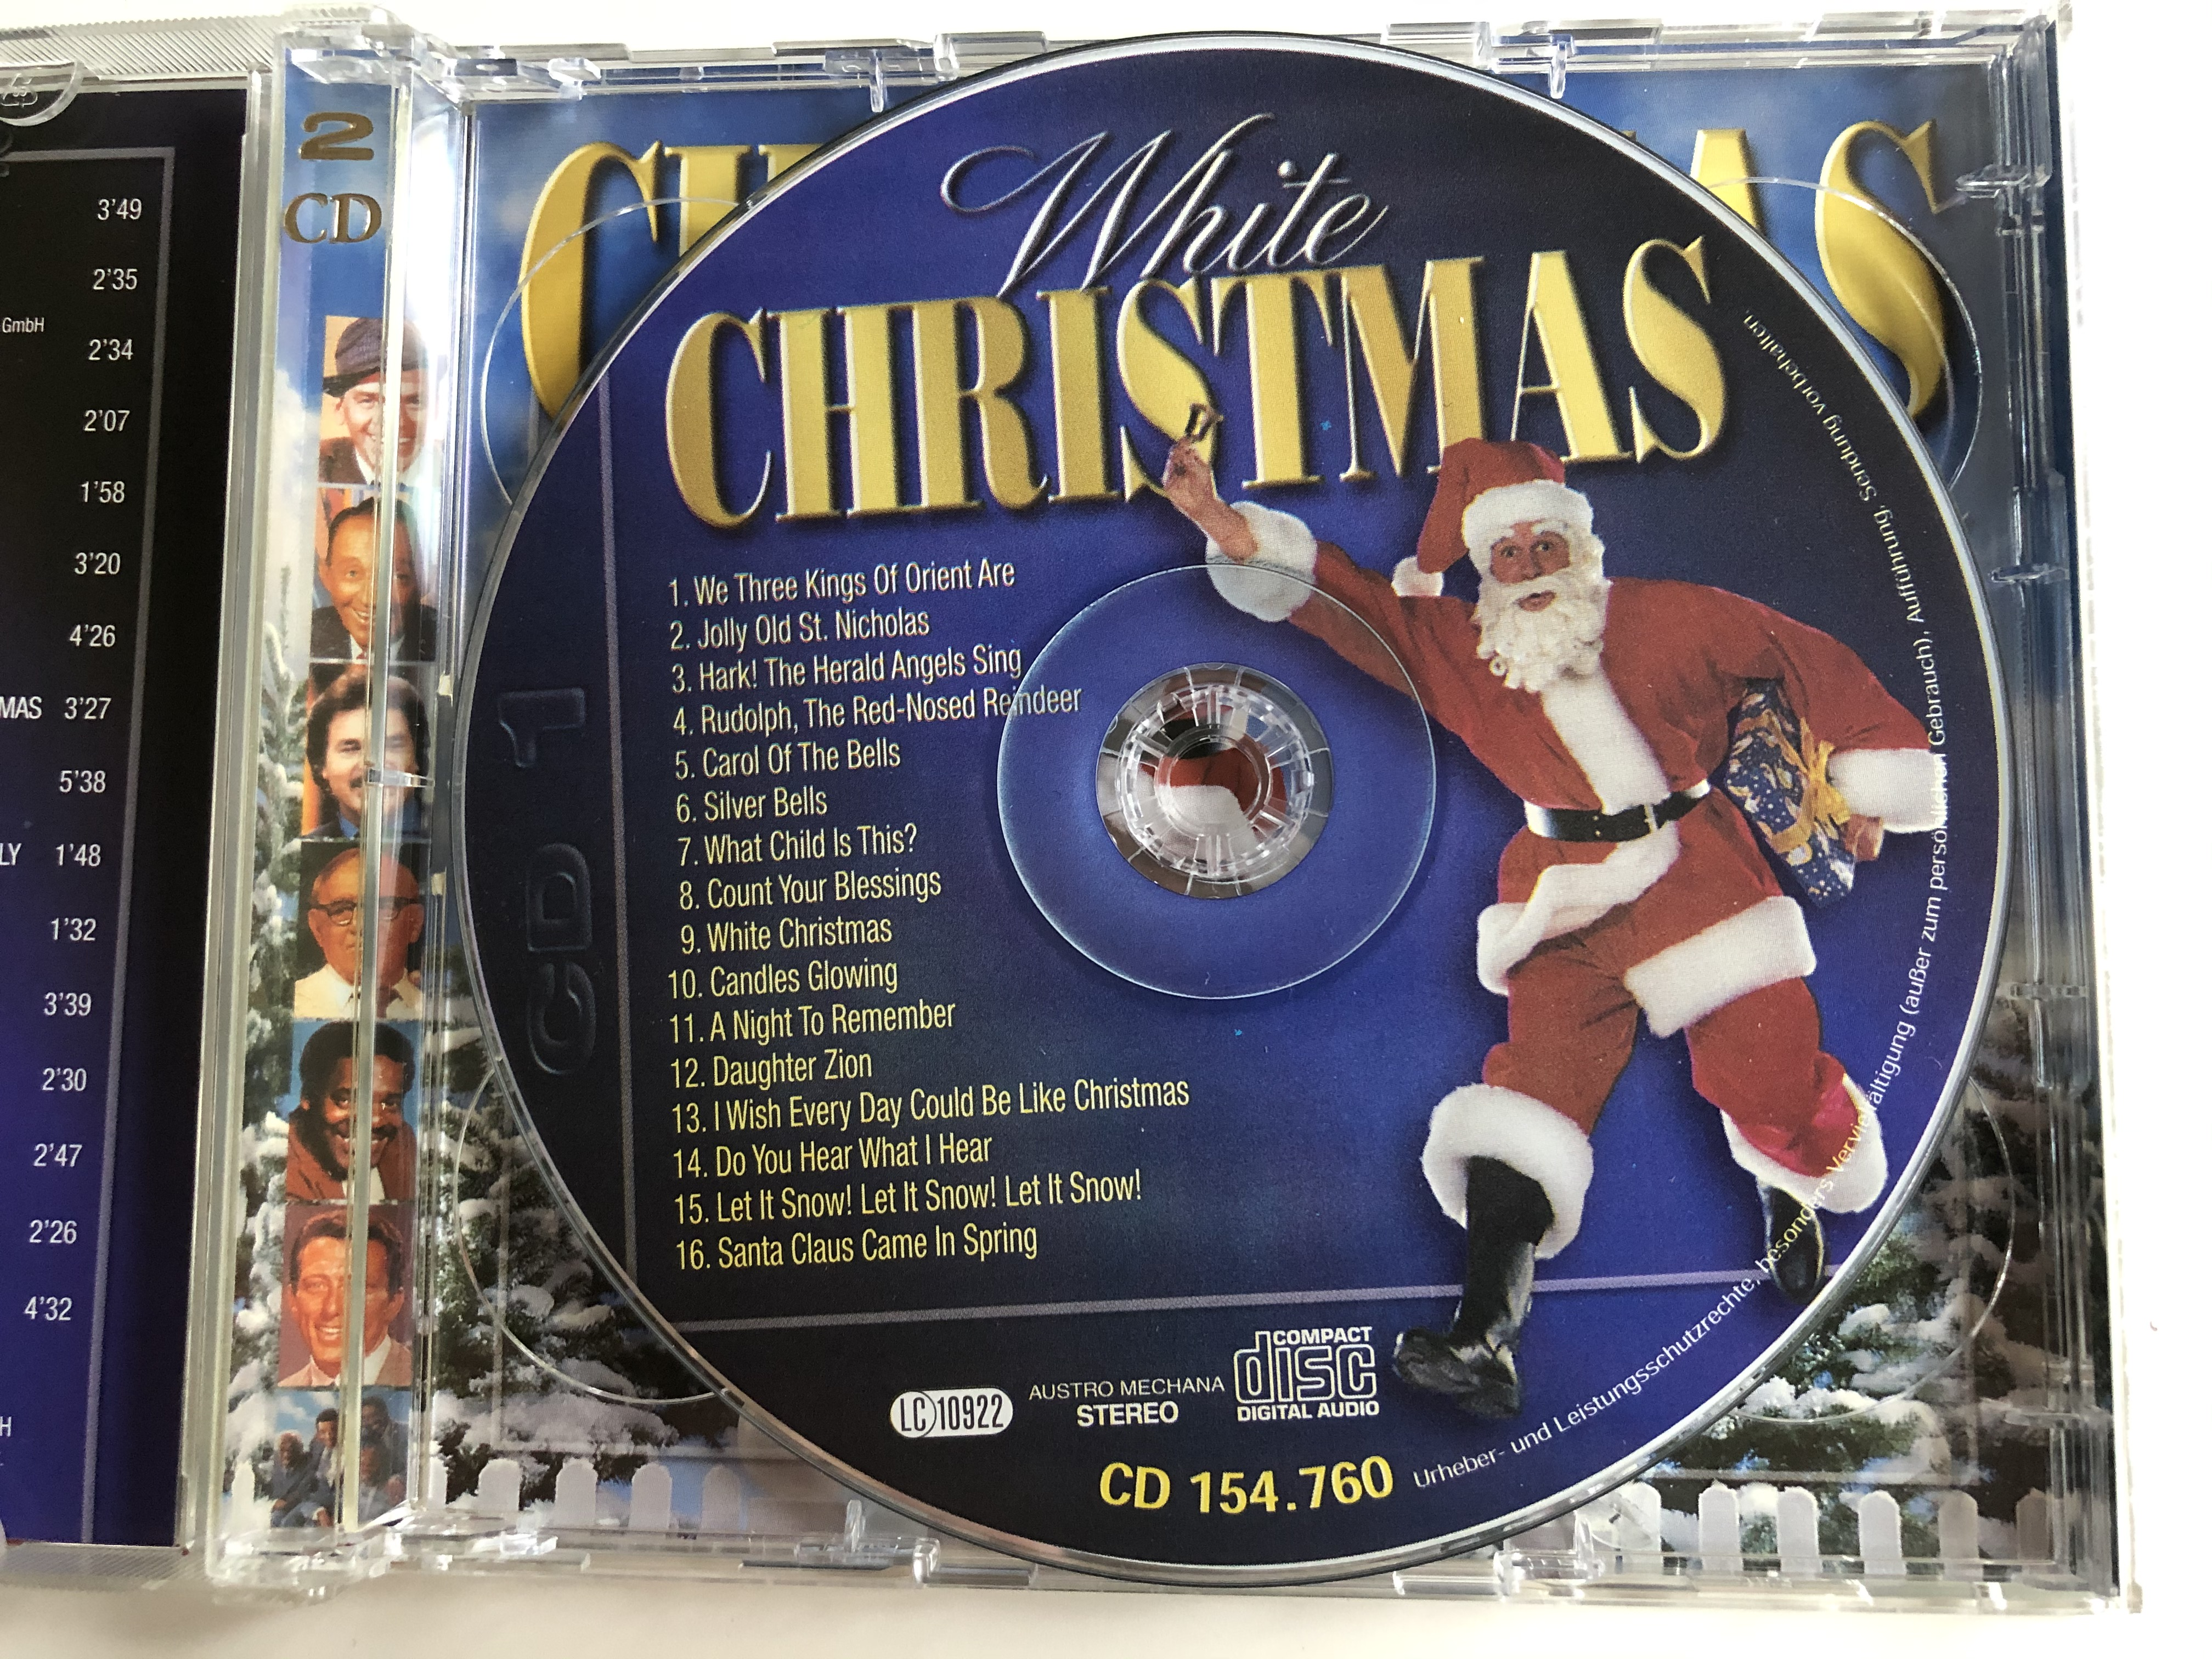 christmas-white-silver-bells-white-christmas-what-child-is-this-a-night-to-remember-wish-you-a-merry-christmas-santa-claus-came-in-the-spring-where-did-my-snowman-go-euro-trend-2x-audio-3-.jpg